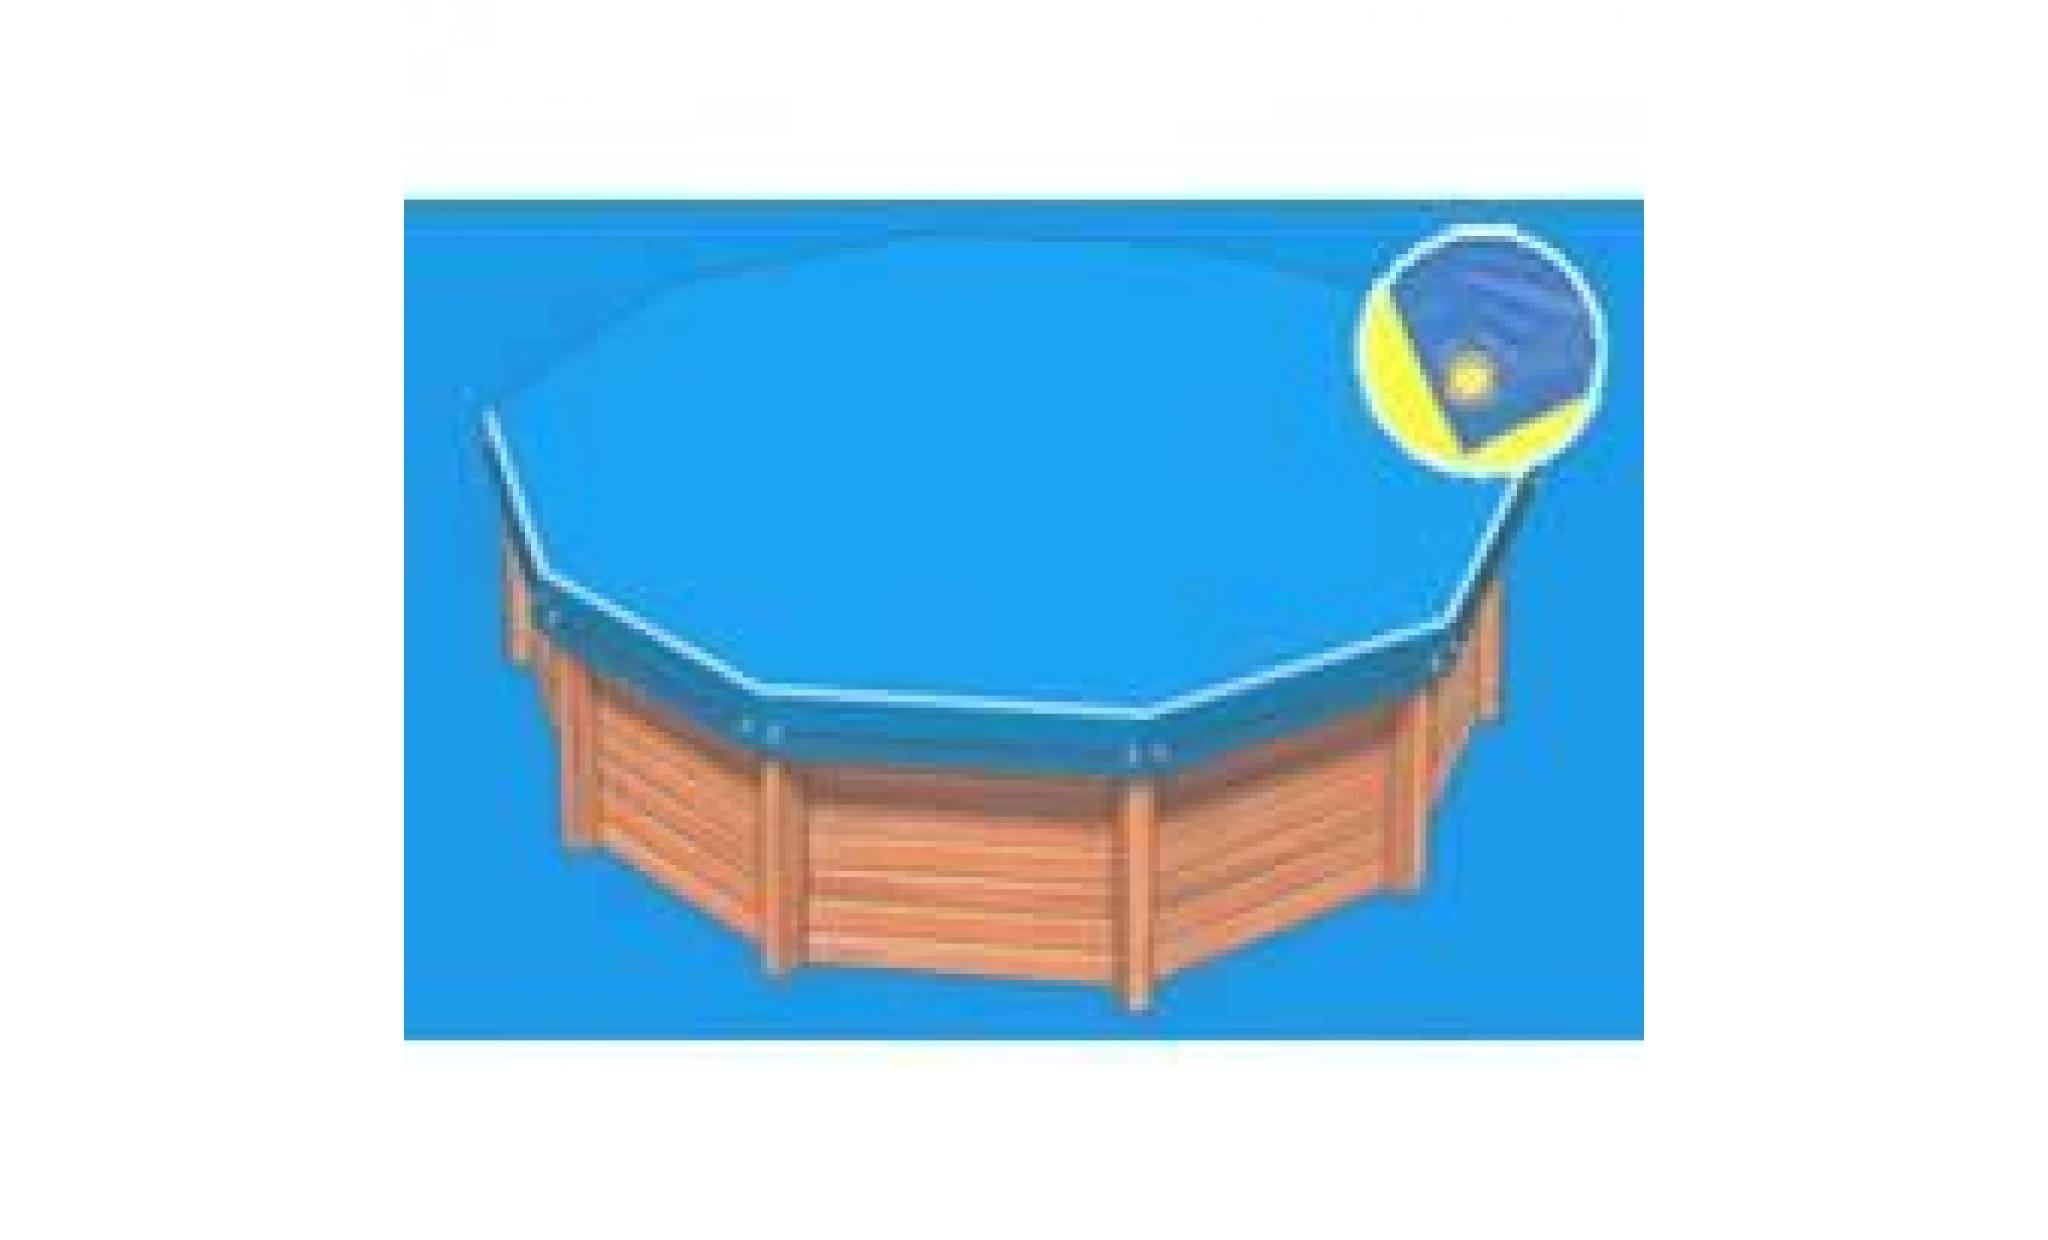 B che hiver eco bleue compatible piscine sunbay calypso for Piscine eco